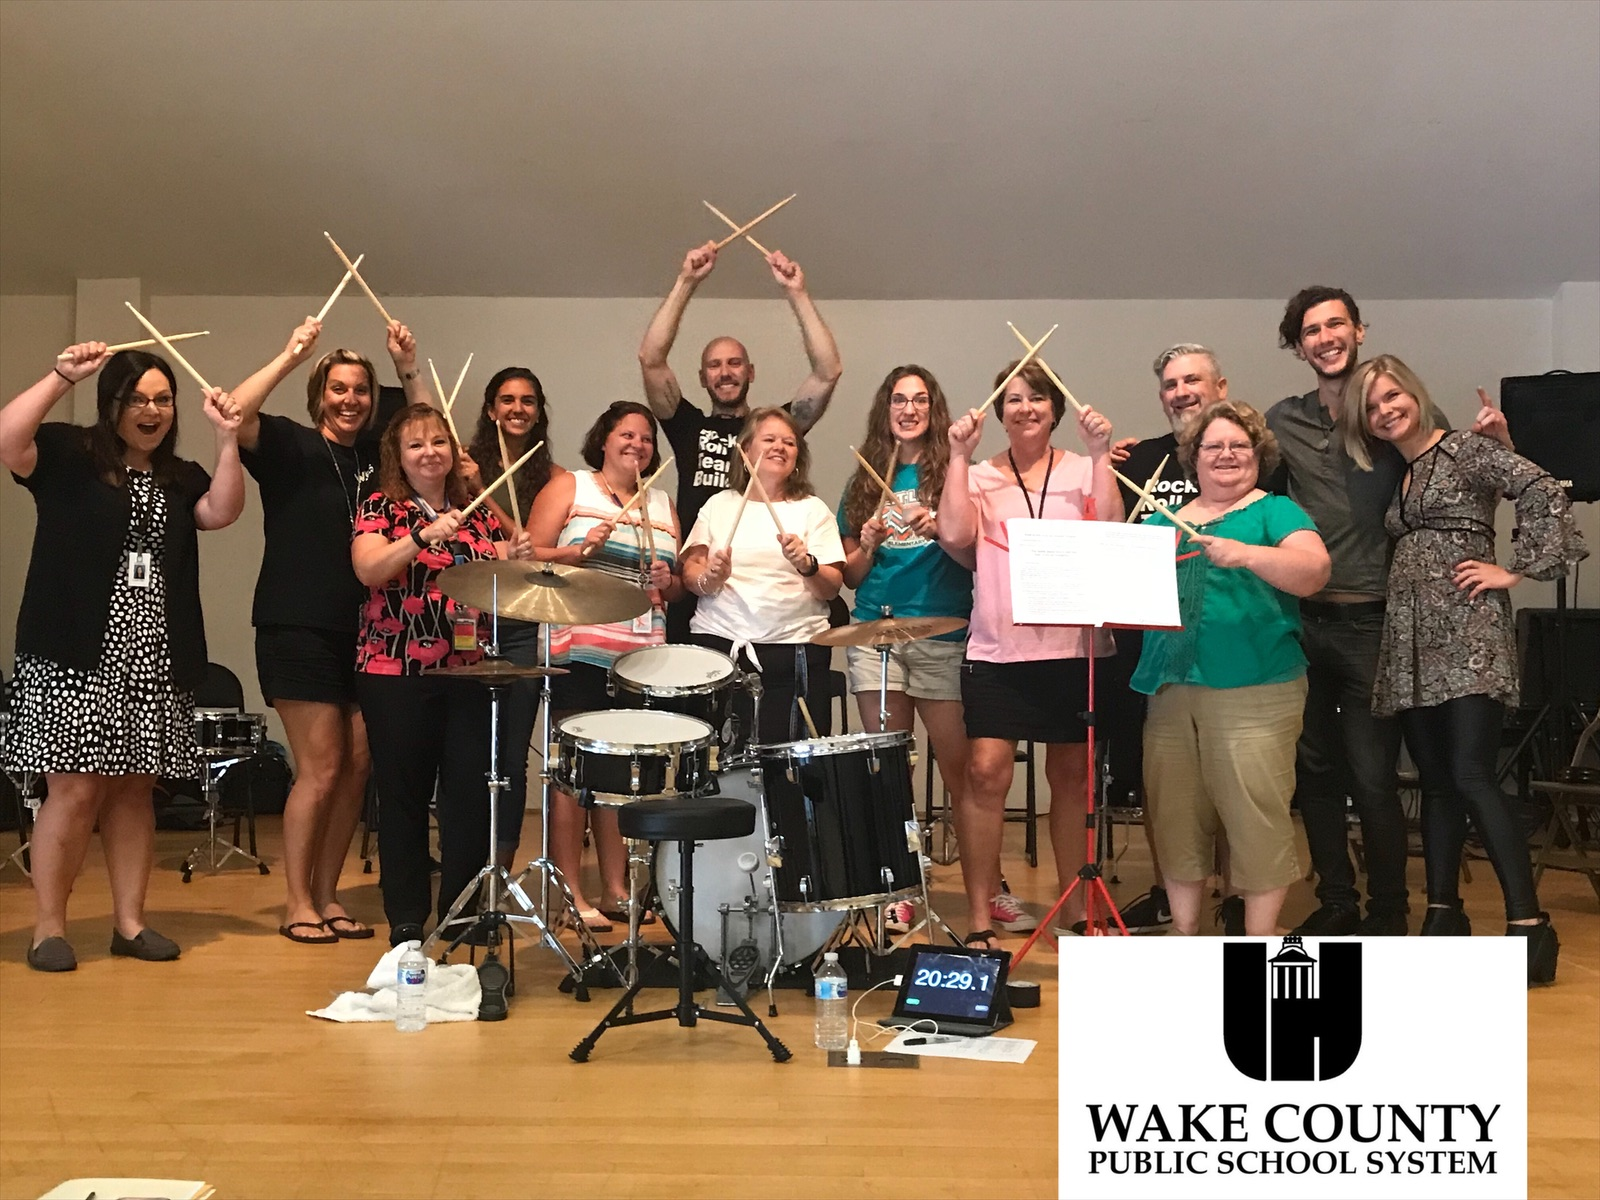 - We love teachers! What a blast rocking out with the Wake County Public School administrators + faculty!www.wcpss.net